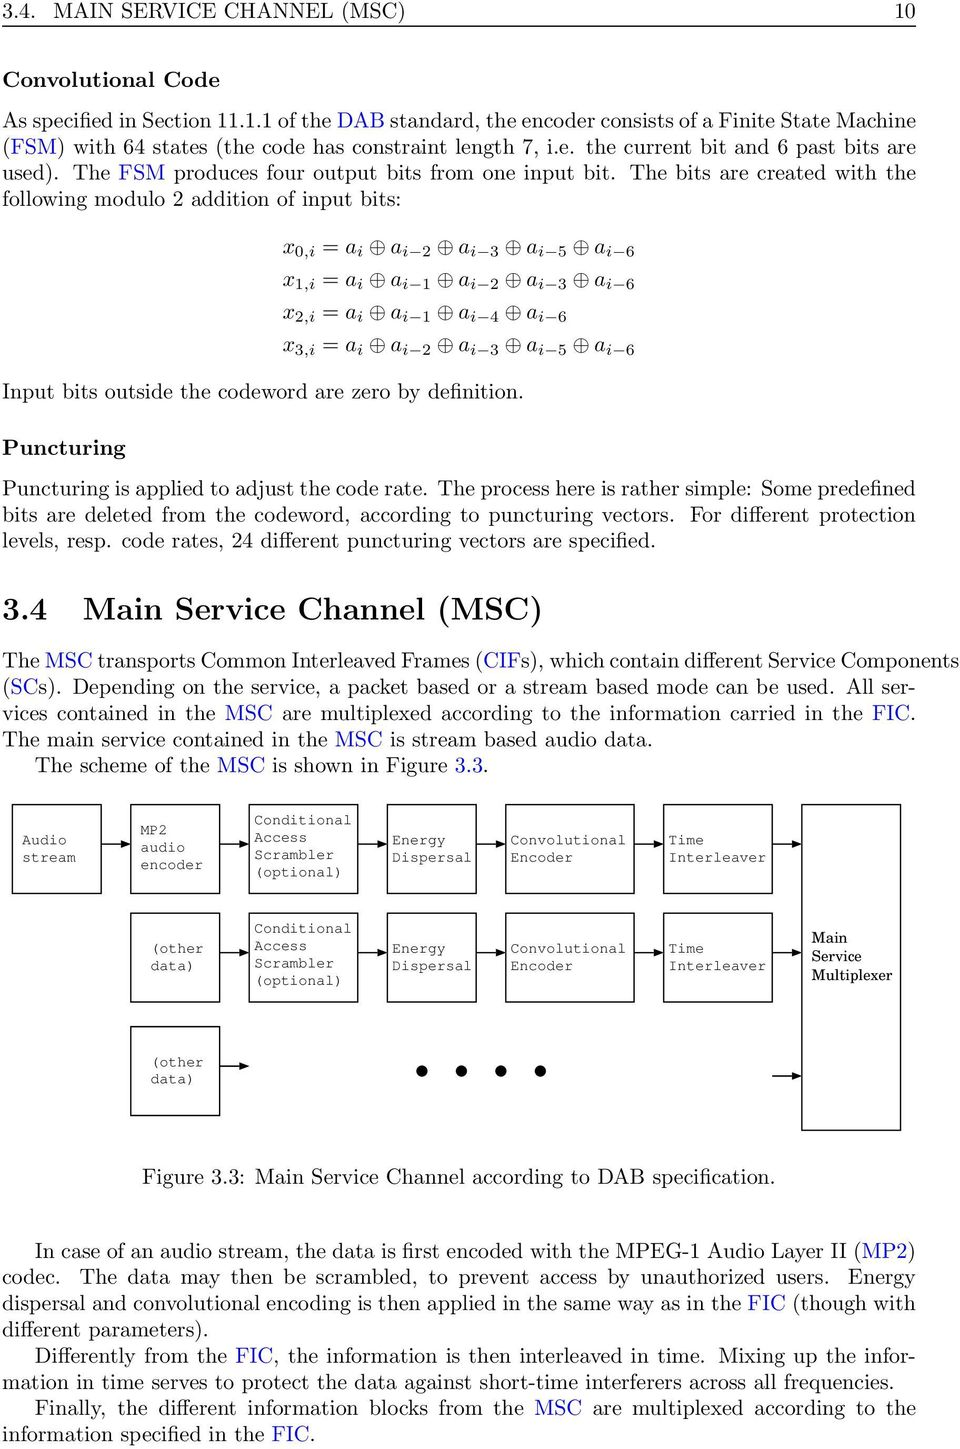 dab software receiver implementation - pdf